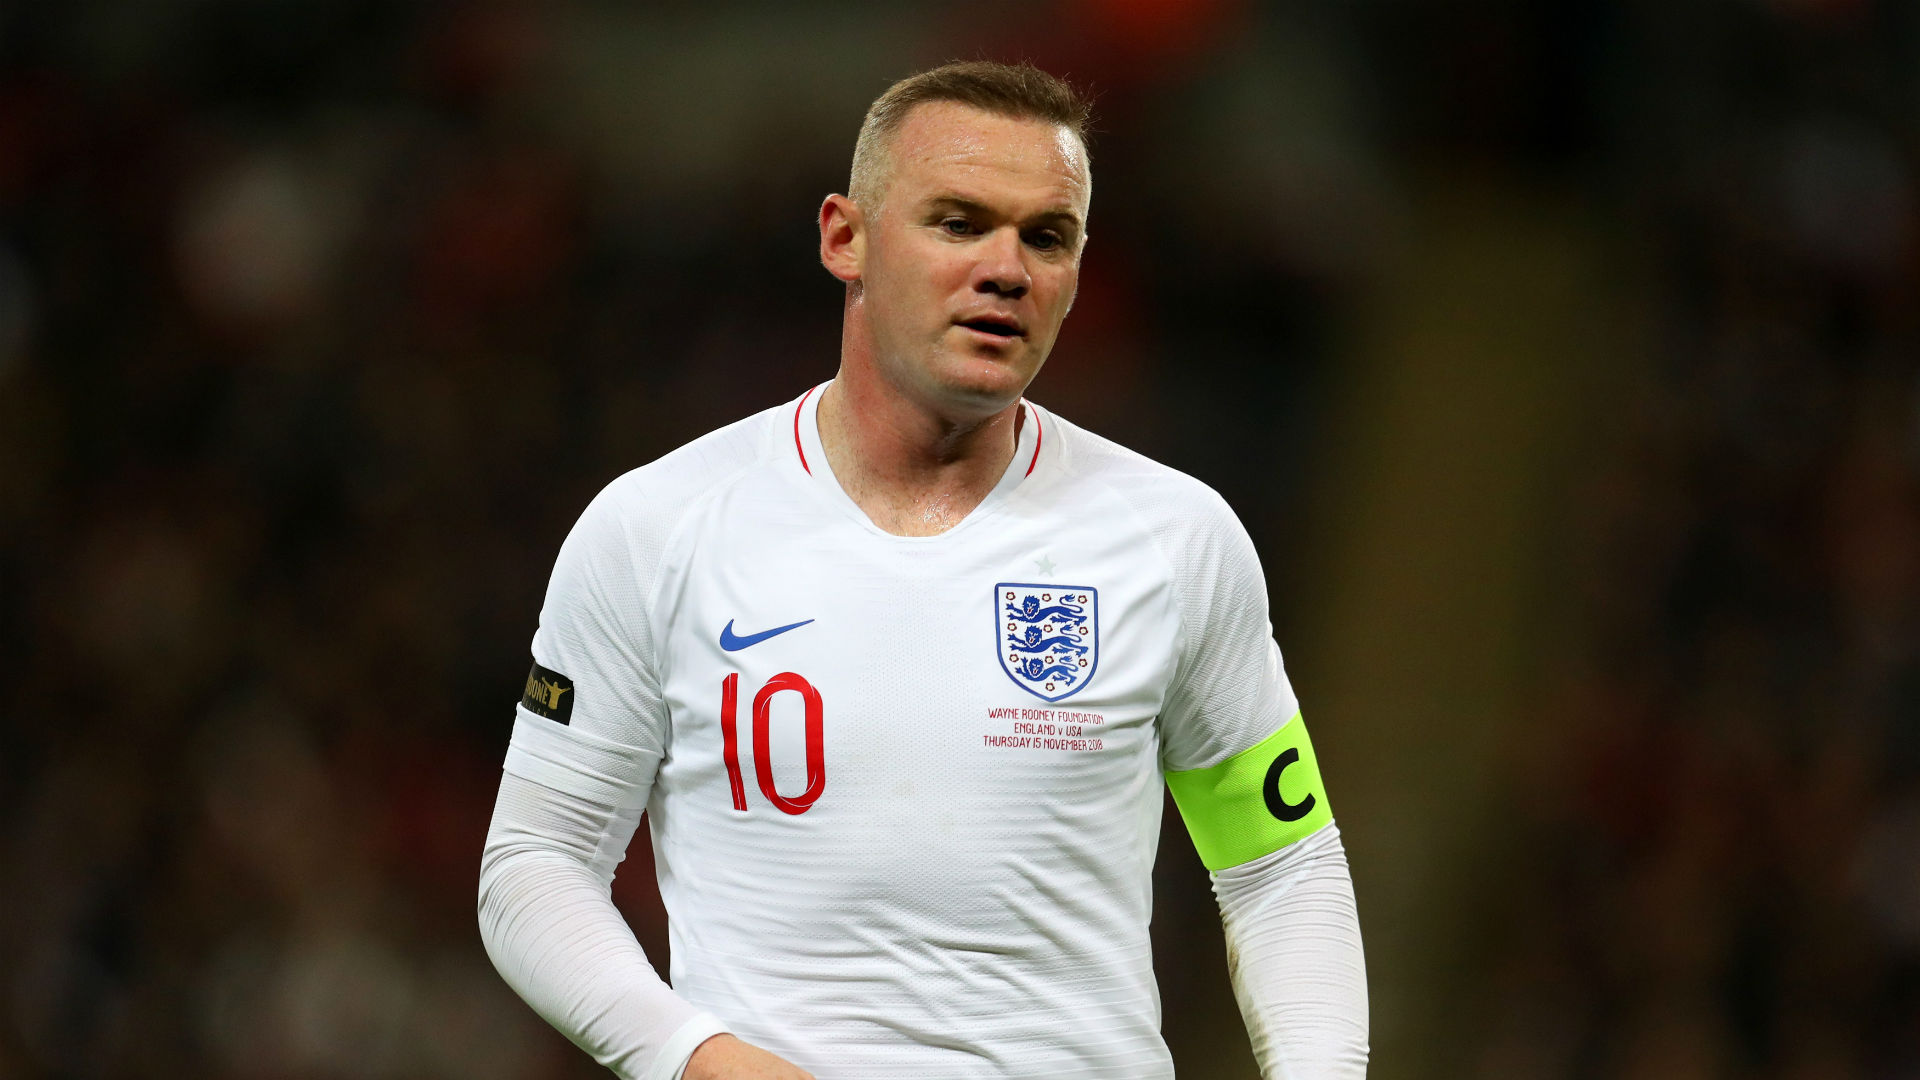 Wayne Rooney arrested: Man United star held over public drunkenness - USA media